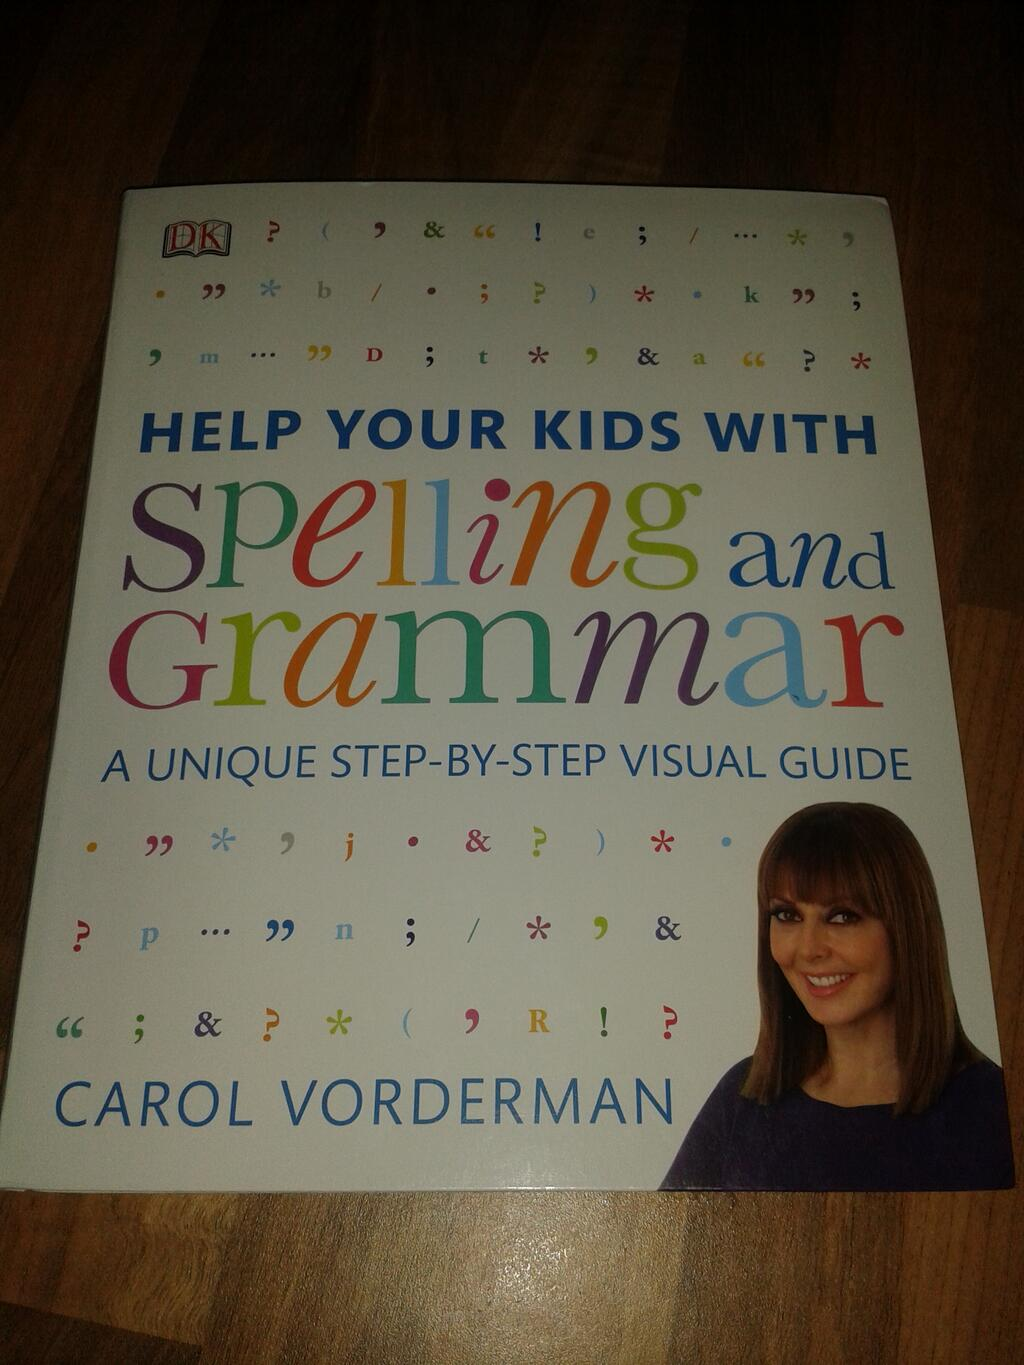 RT @Julesann76: This book is fantastic...a god send for my 12 year old and 9 year old girls! Helps me too!! Thanks @carolvorders http://t.c…